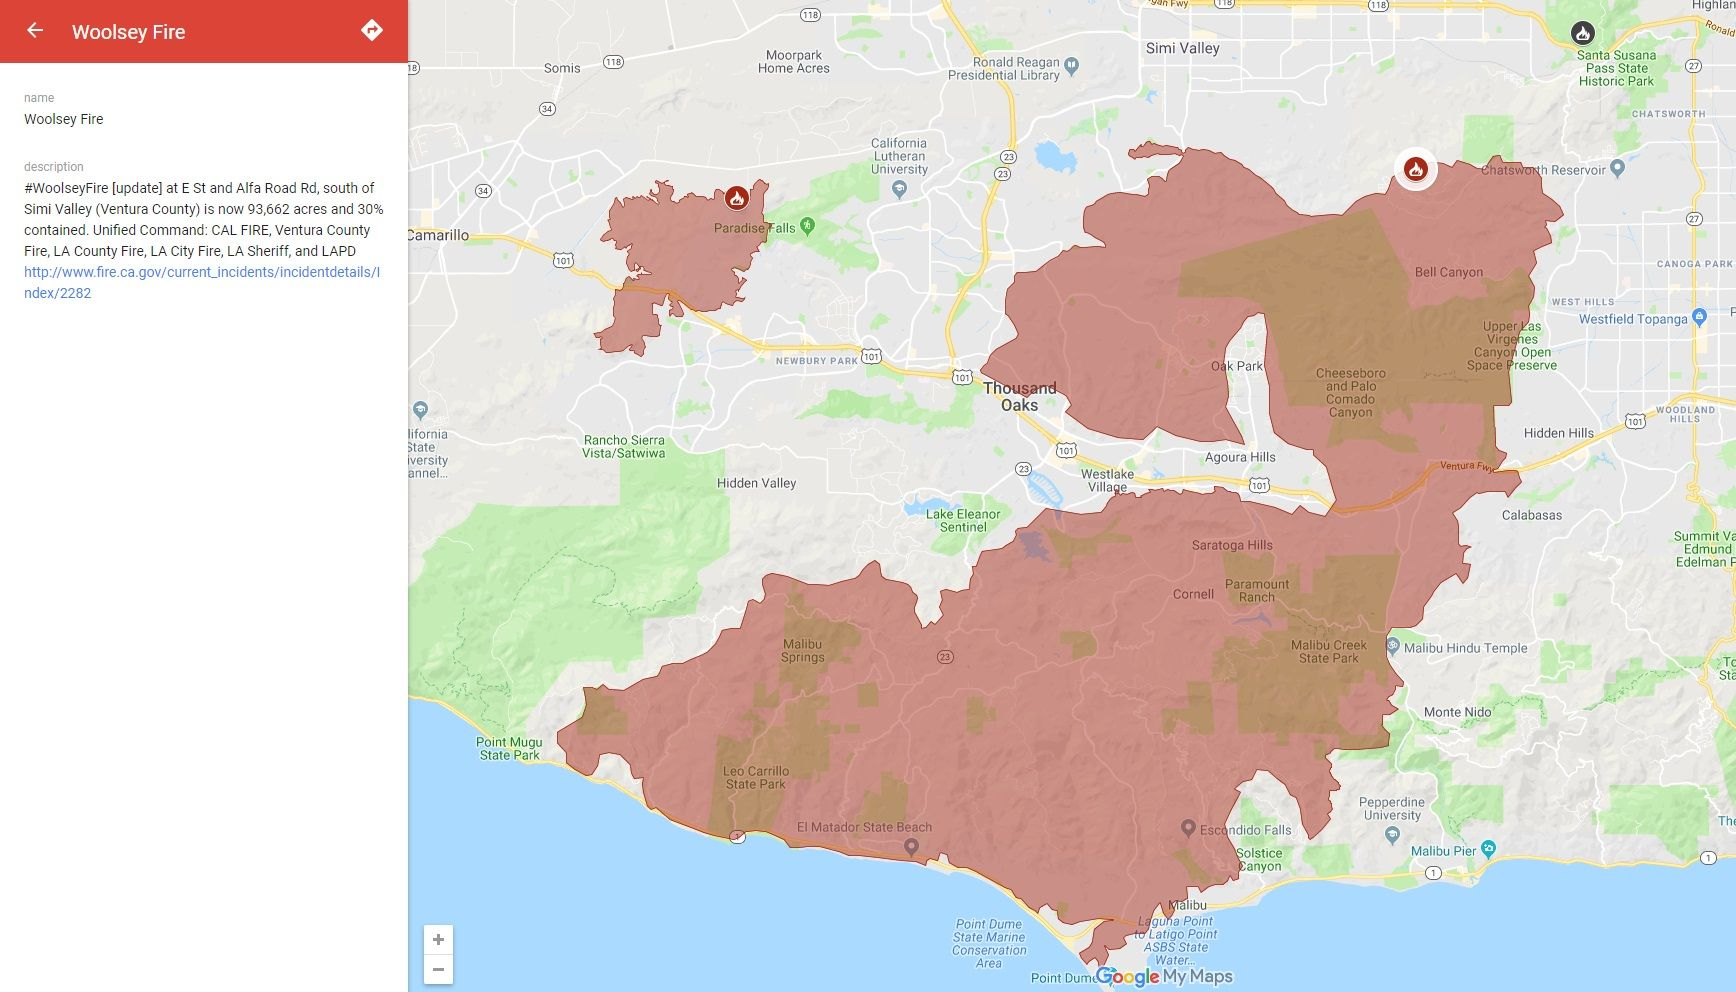 Map Of California Malibu.Woolsey Fire Map Latest Update Shows Over Two Thirds Of Extreme